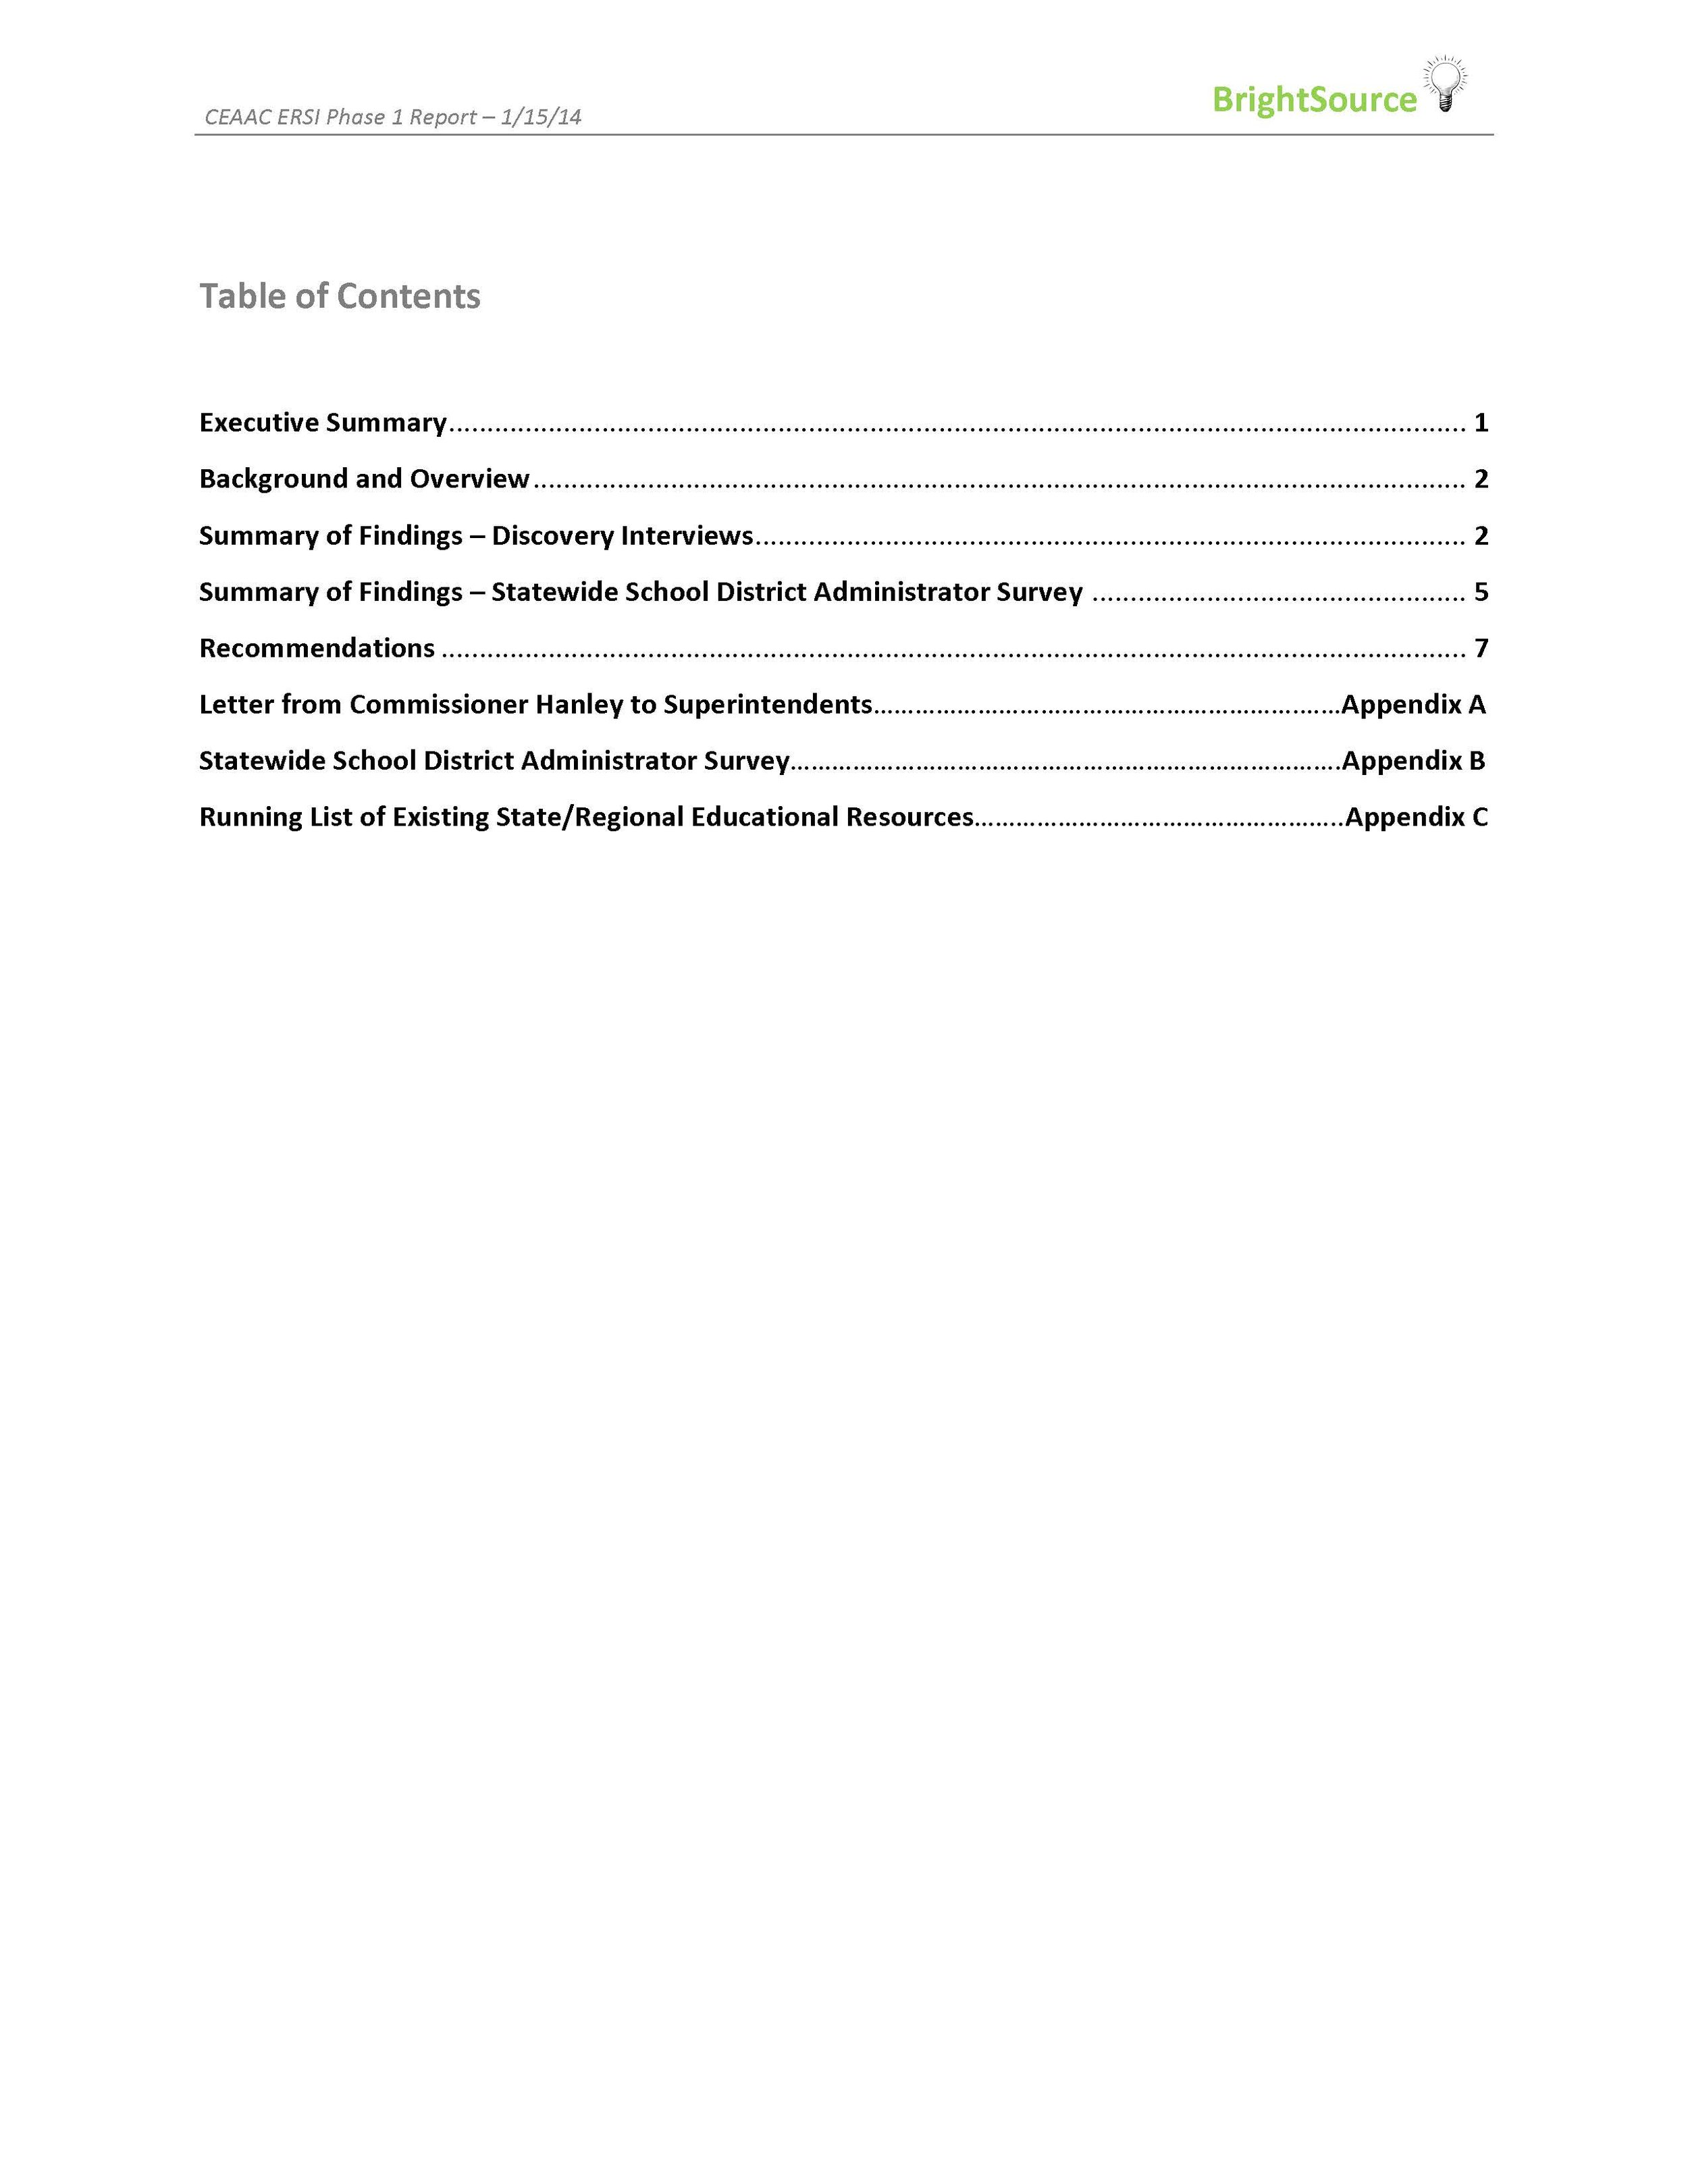 CEAAC ERSI Phase 1 report_final_Page_03.jpg